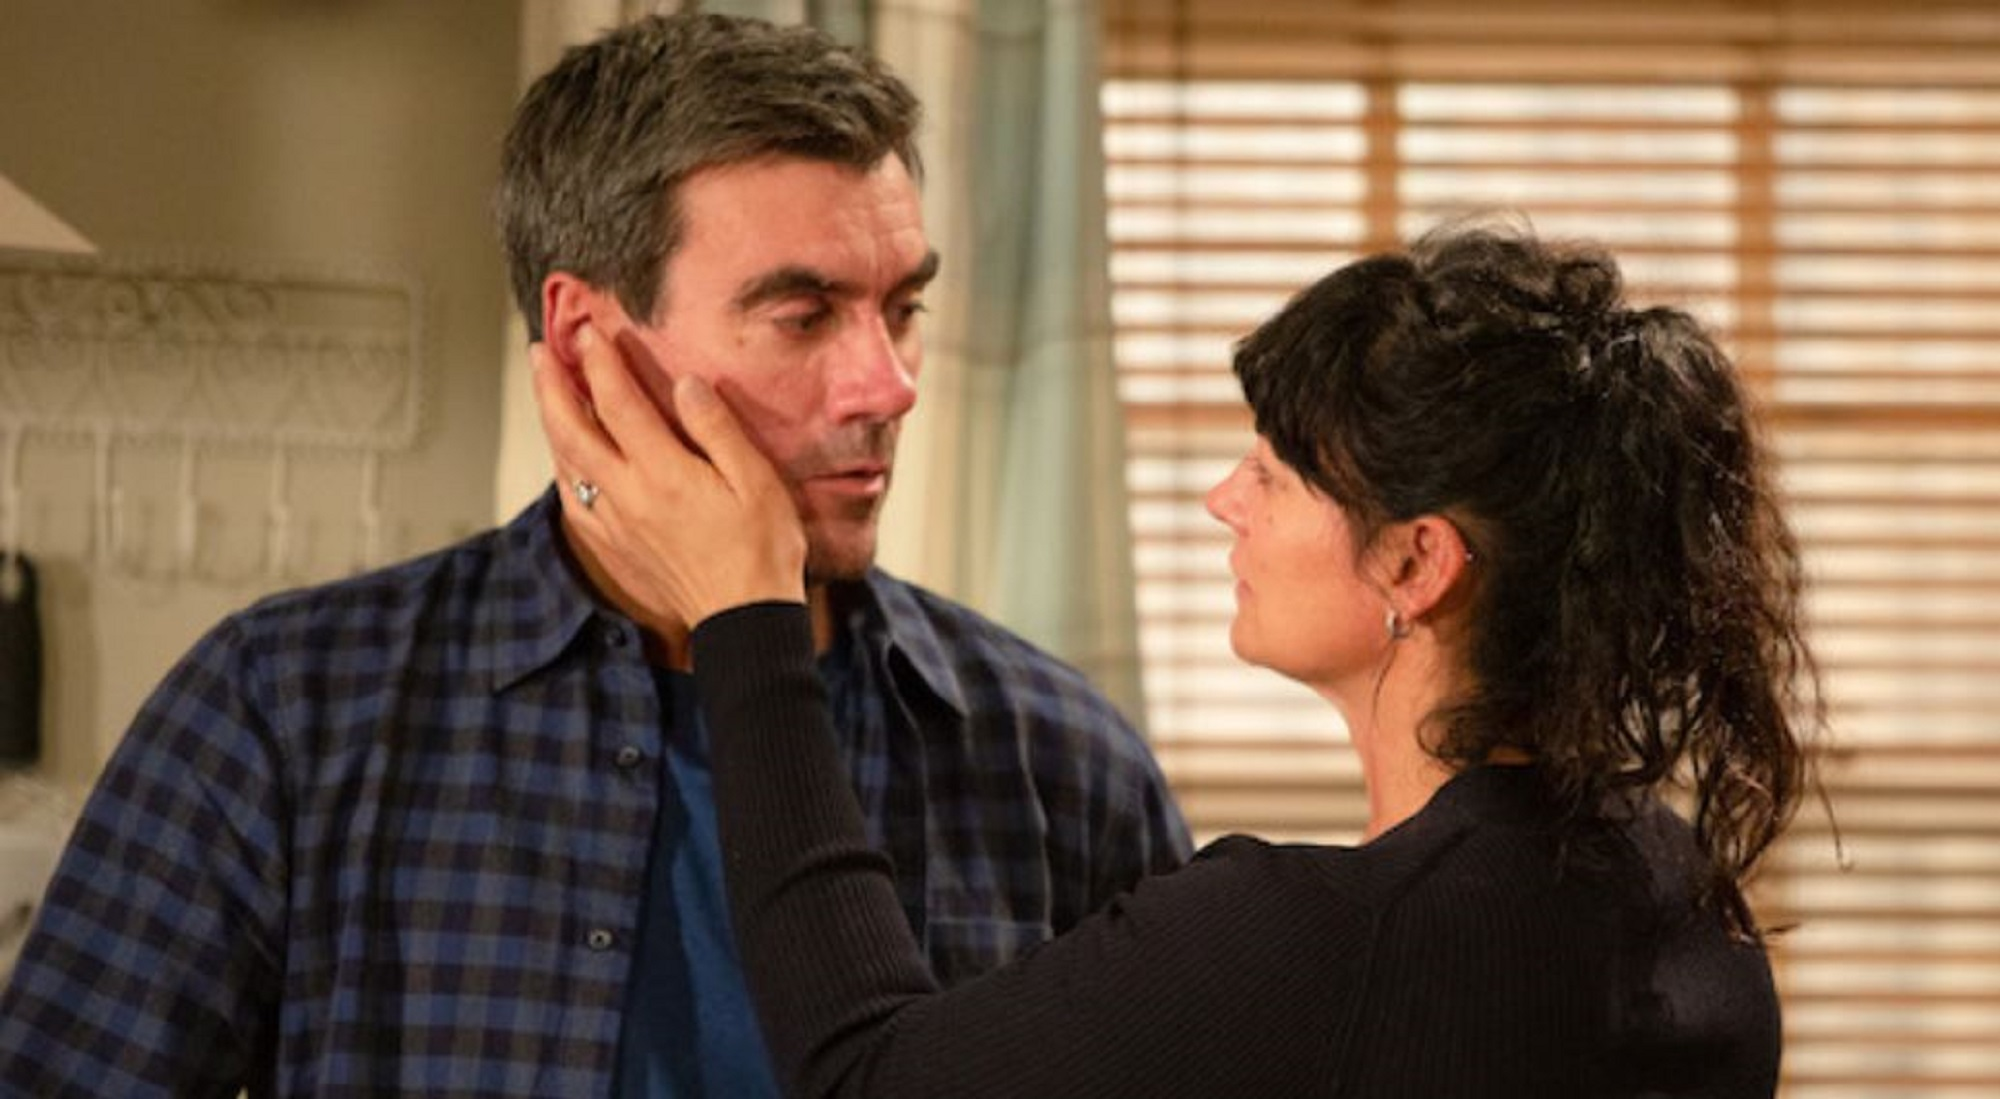 Emmerdale's Cain and Moira could get back together, says actor Jeff Hordley